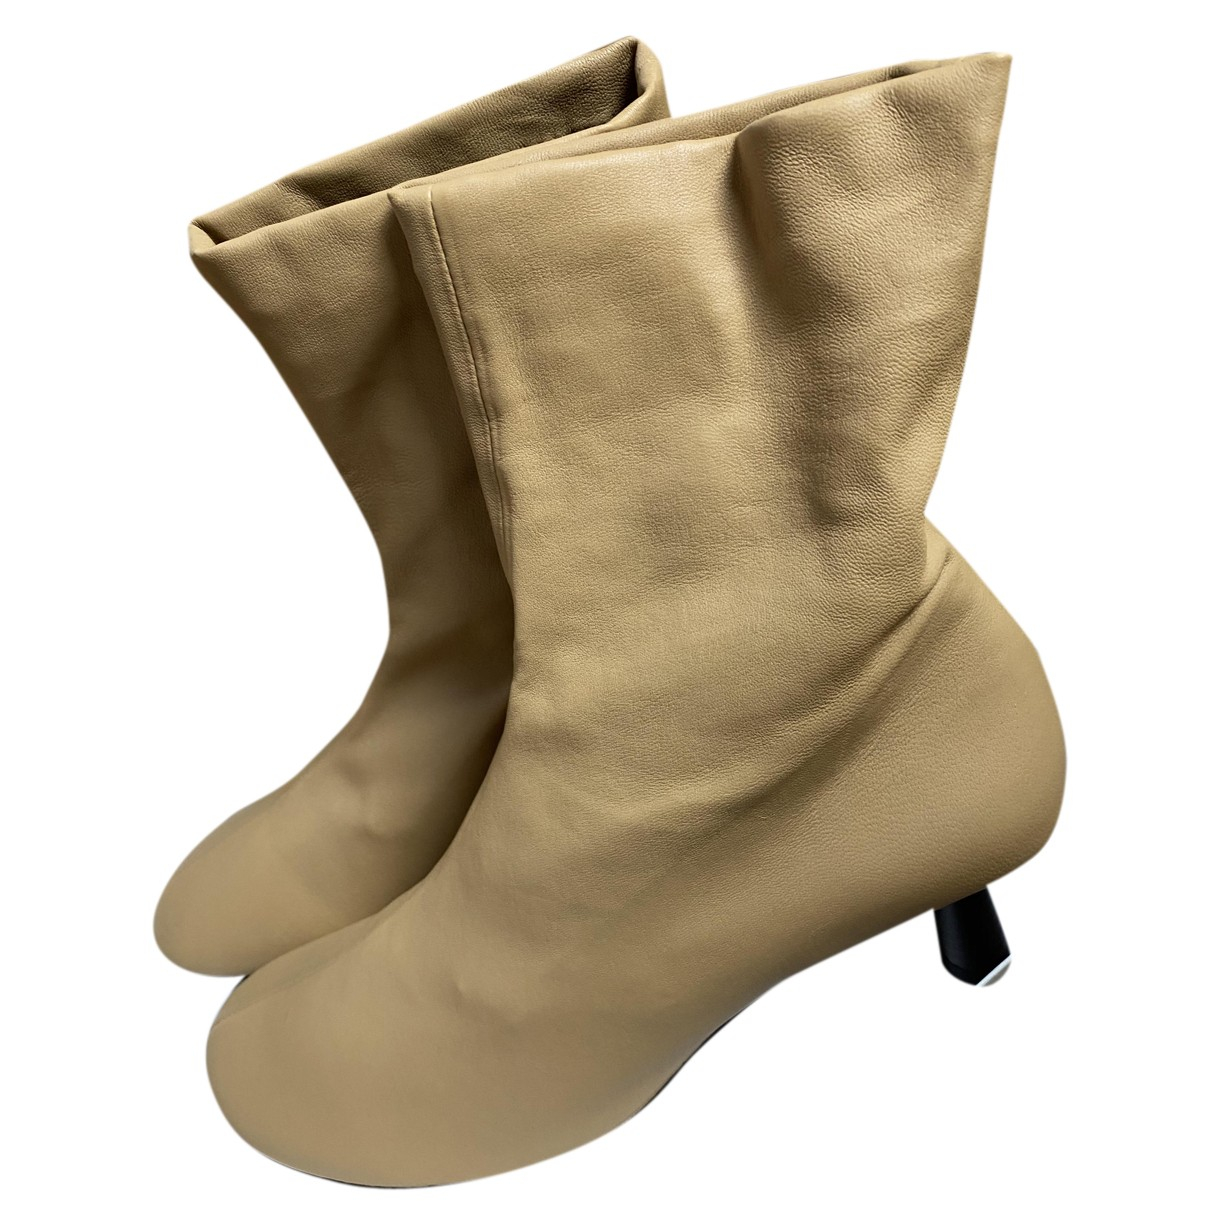 Cos N Beige Leather Boots for Women 41 EU